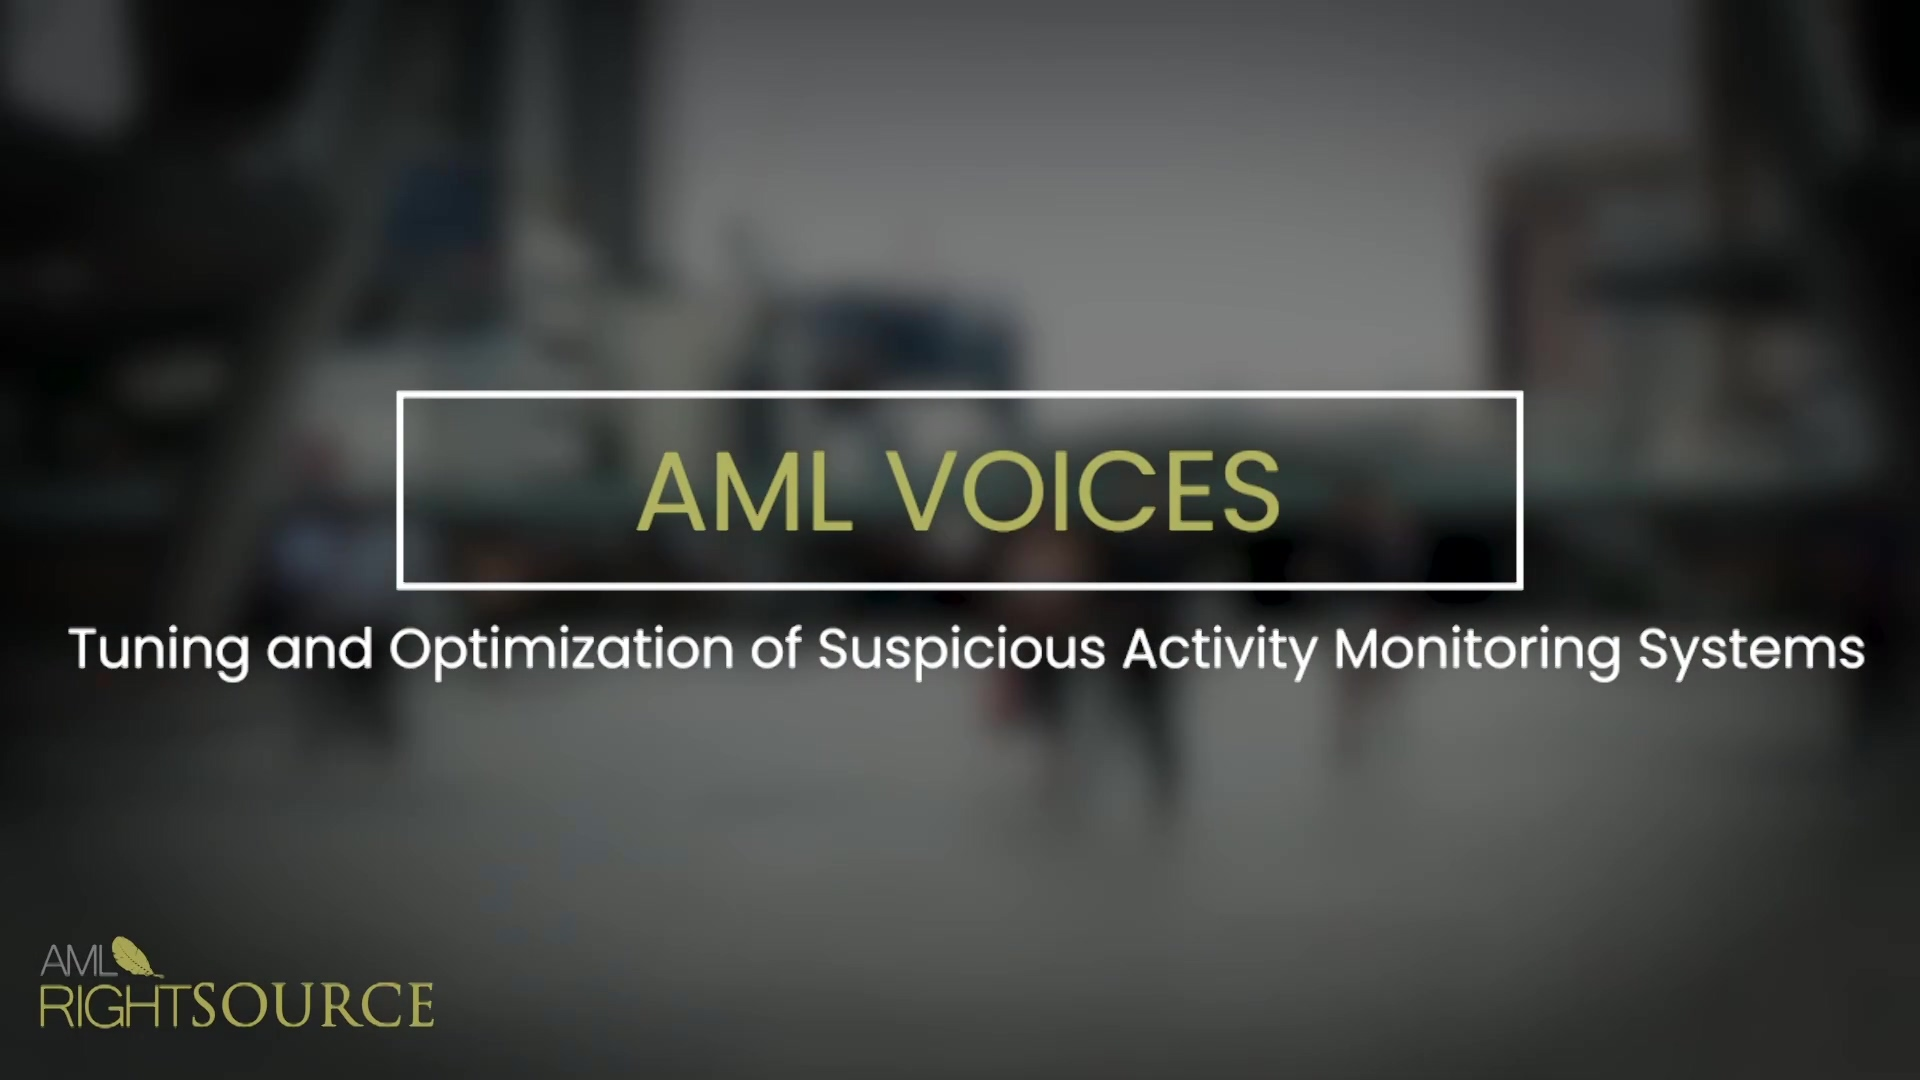 Tuning and Optimization of Suspicious Activity Monitoring Systems